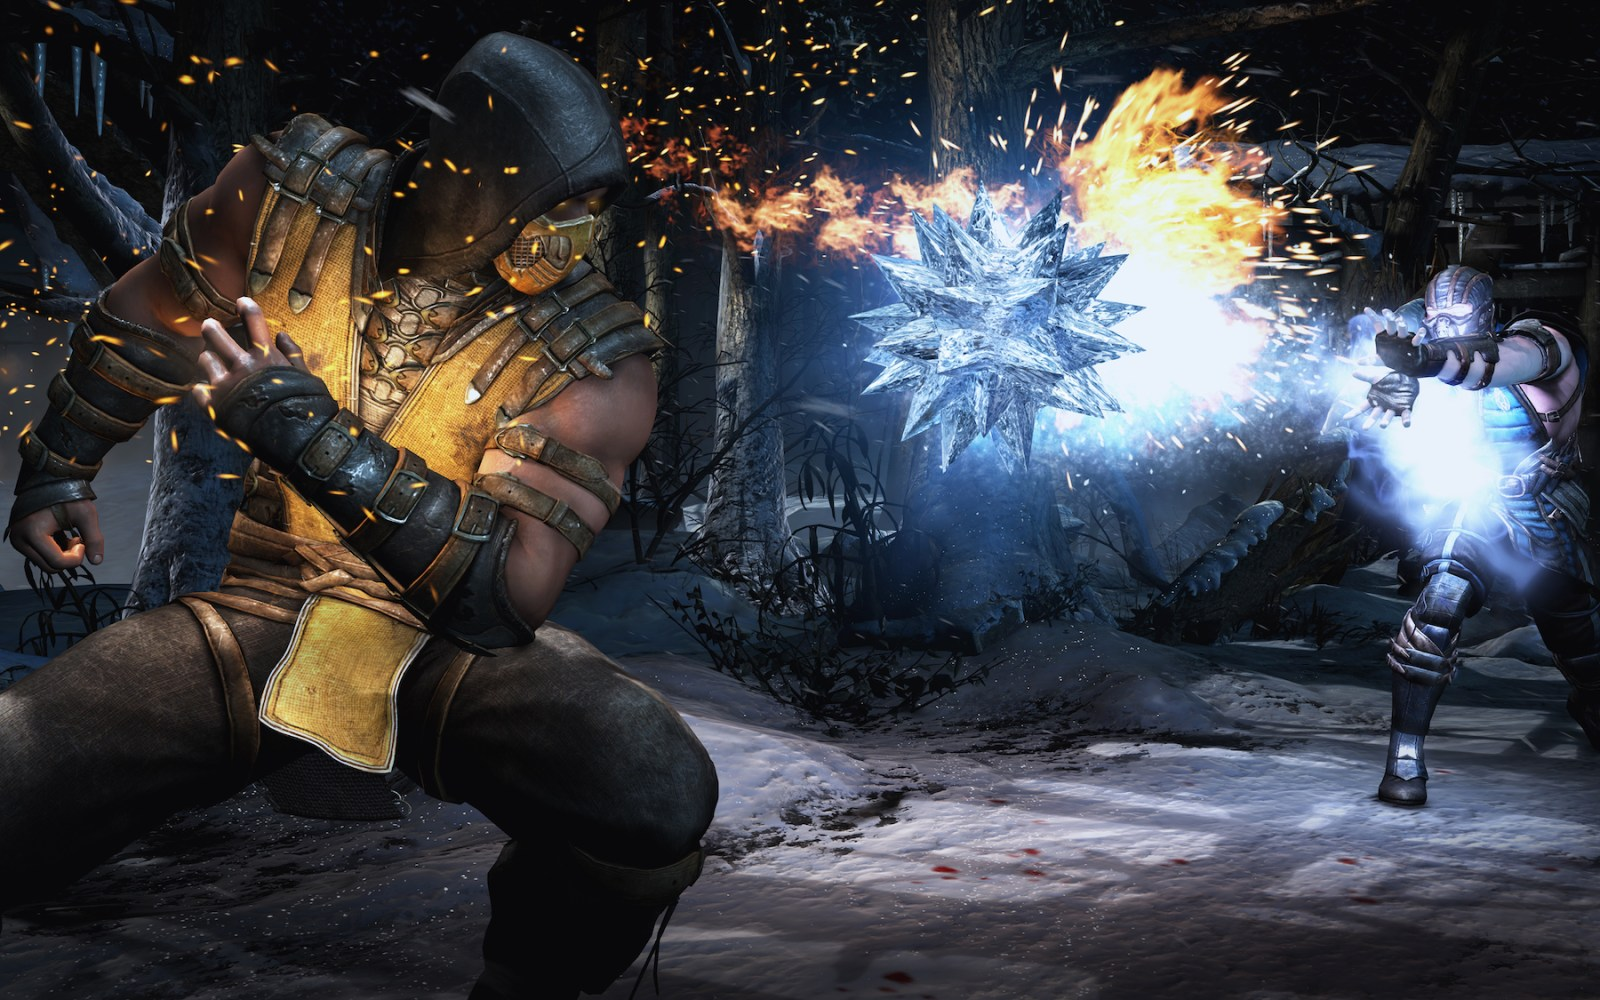 Games/Apps: Mortal Kombat X from $25, Batman Arkham Knight from $15, iOS freebies, more